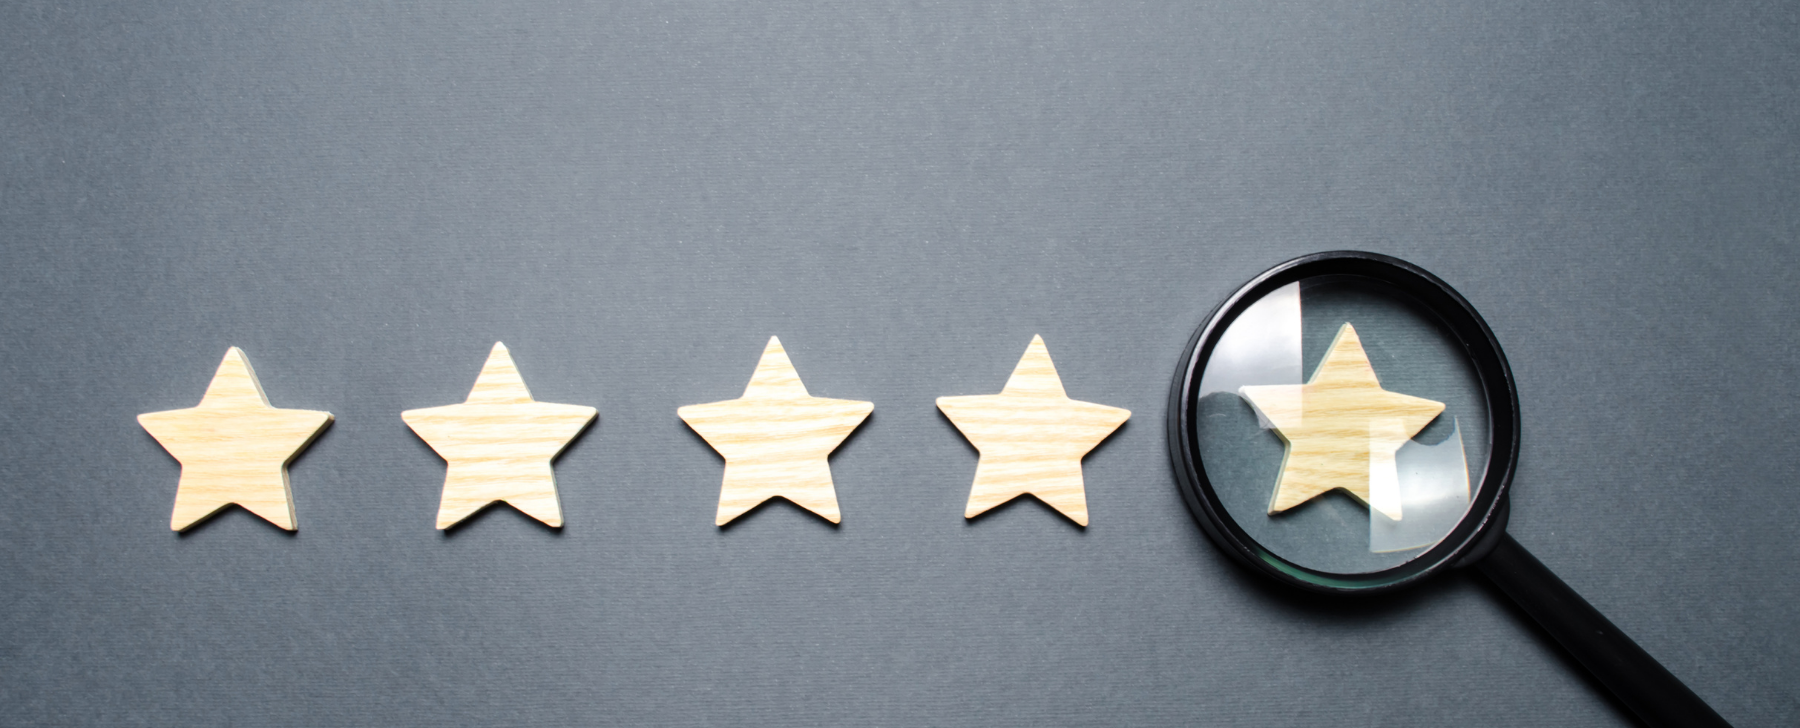 5 stars enhanced credibility from an audit